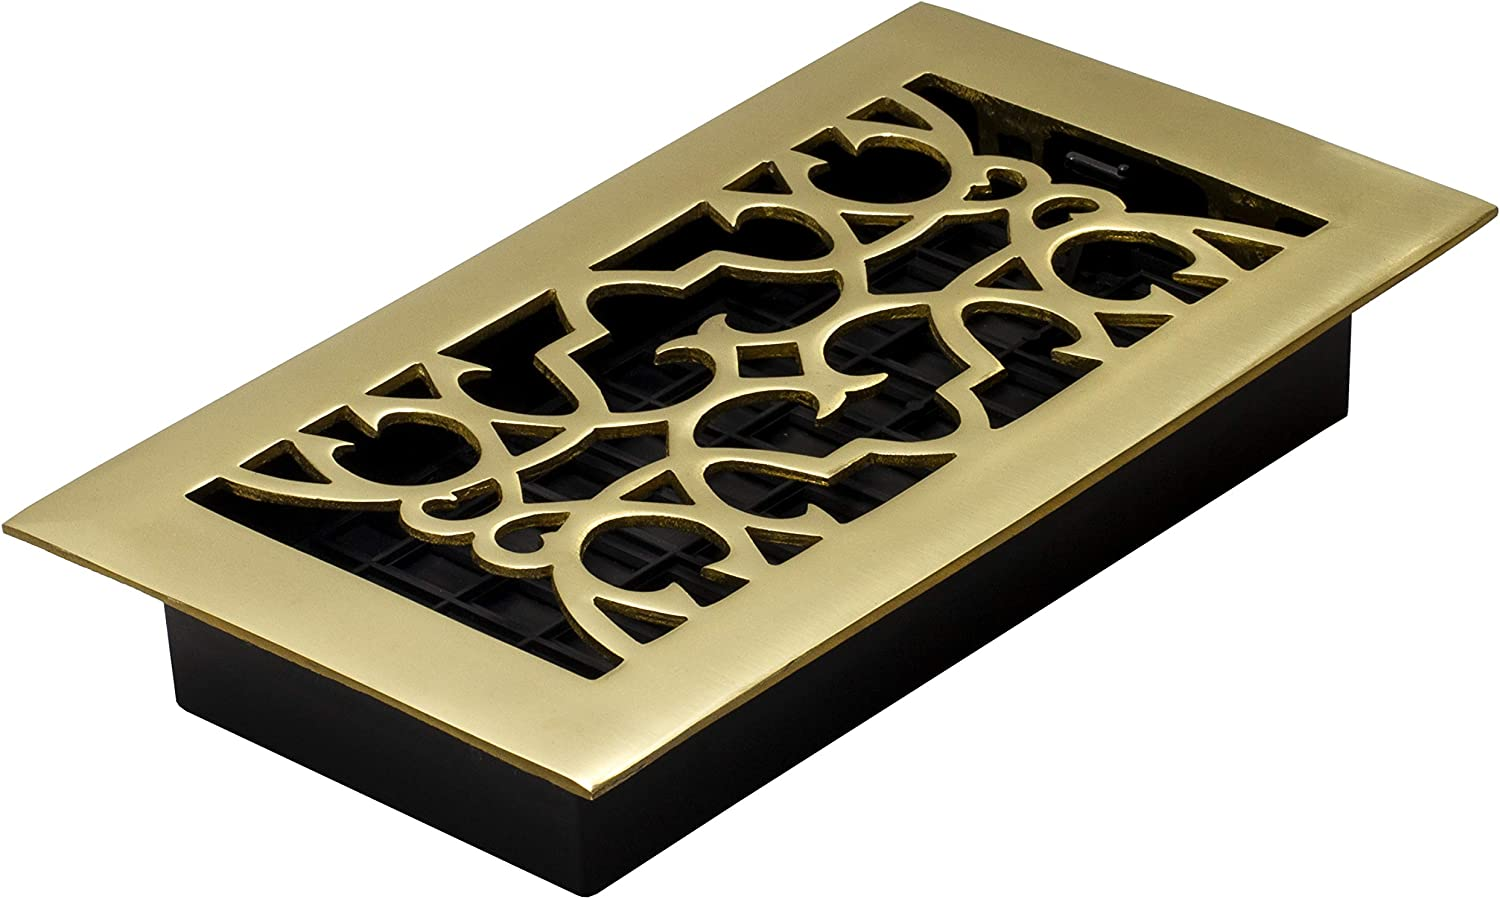 Decor Grates A408 4-Inch by 8-Inch Victorian Floor Register, Solid Brass